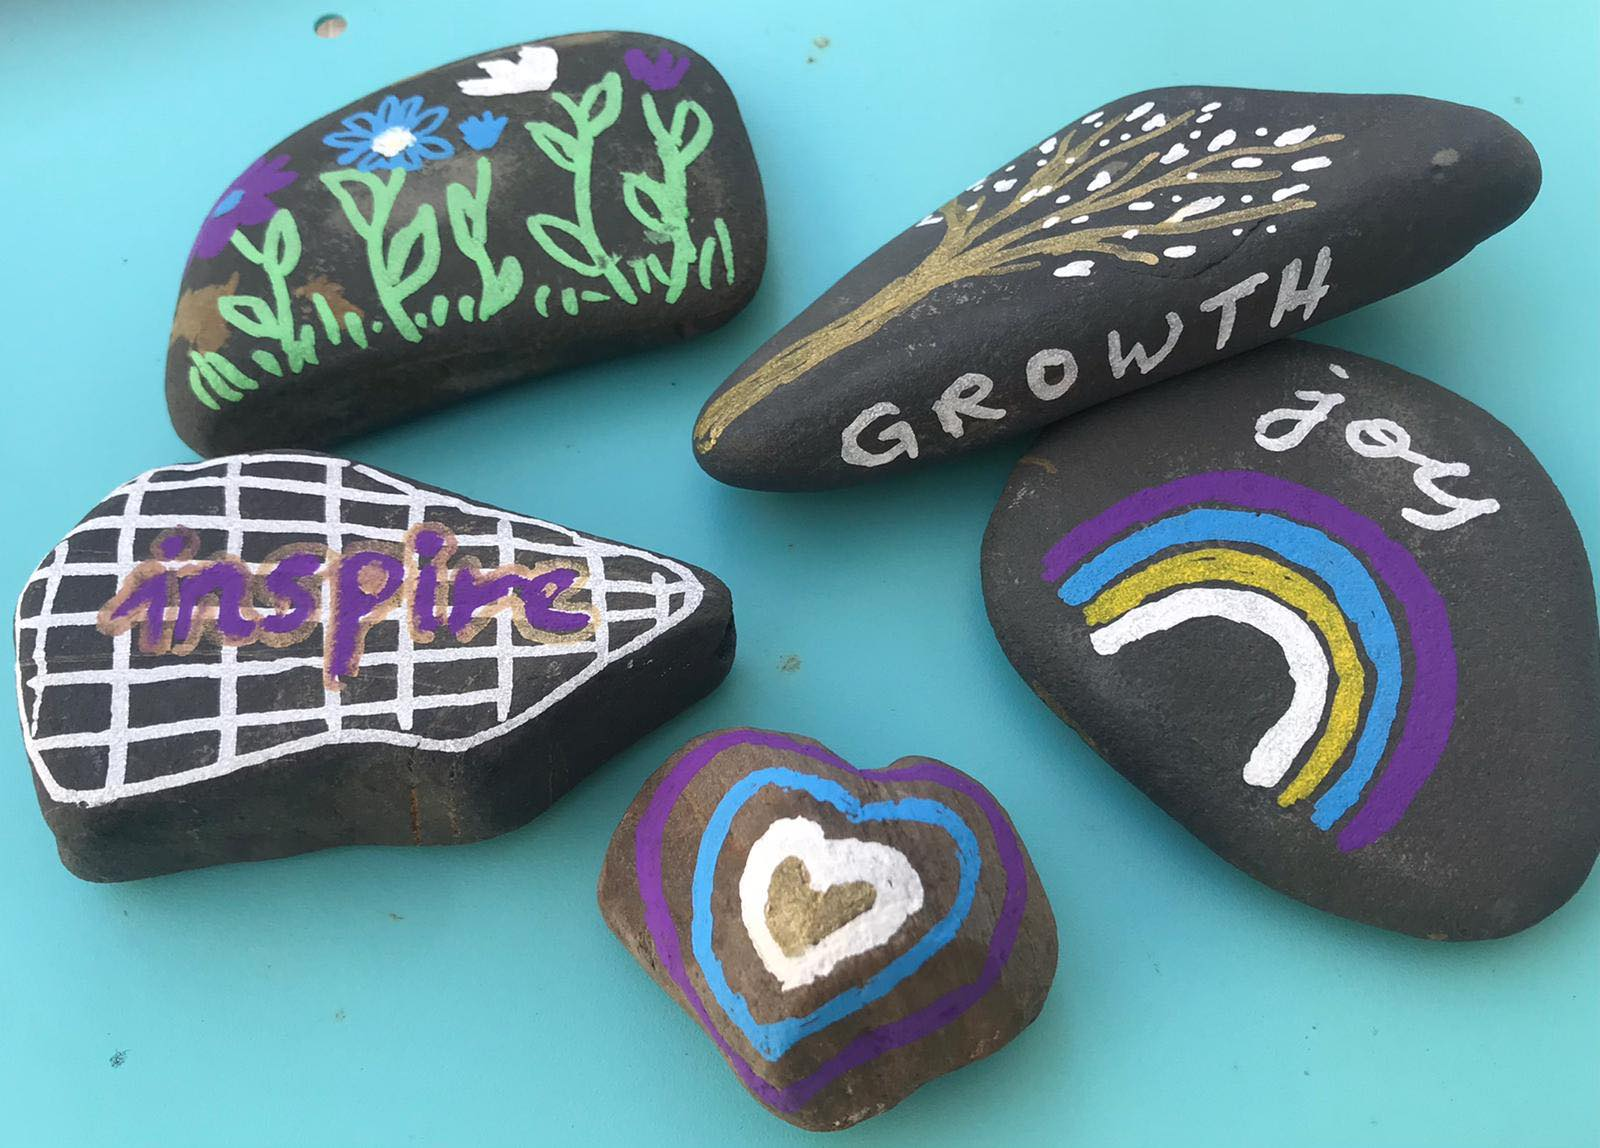 painted colourful stones - joy in everyday life